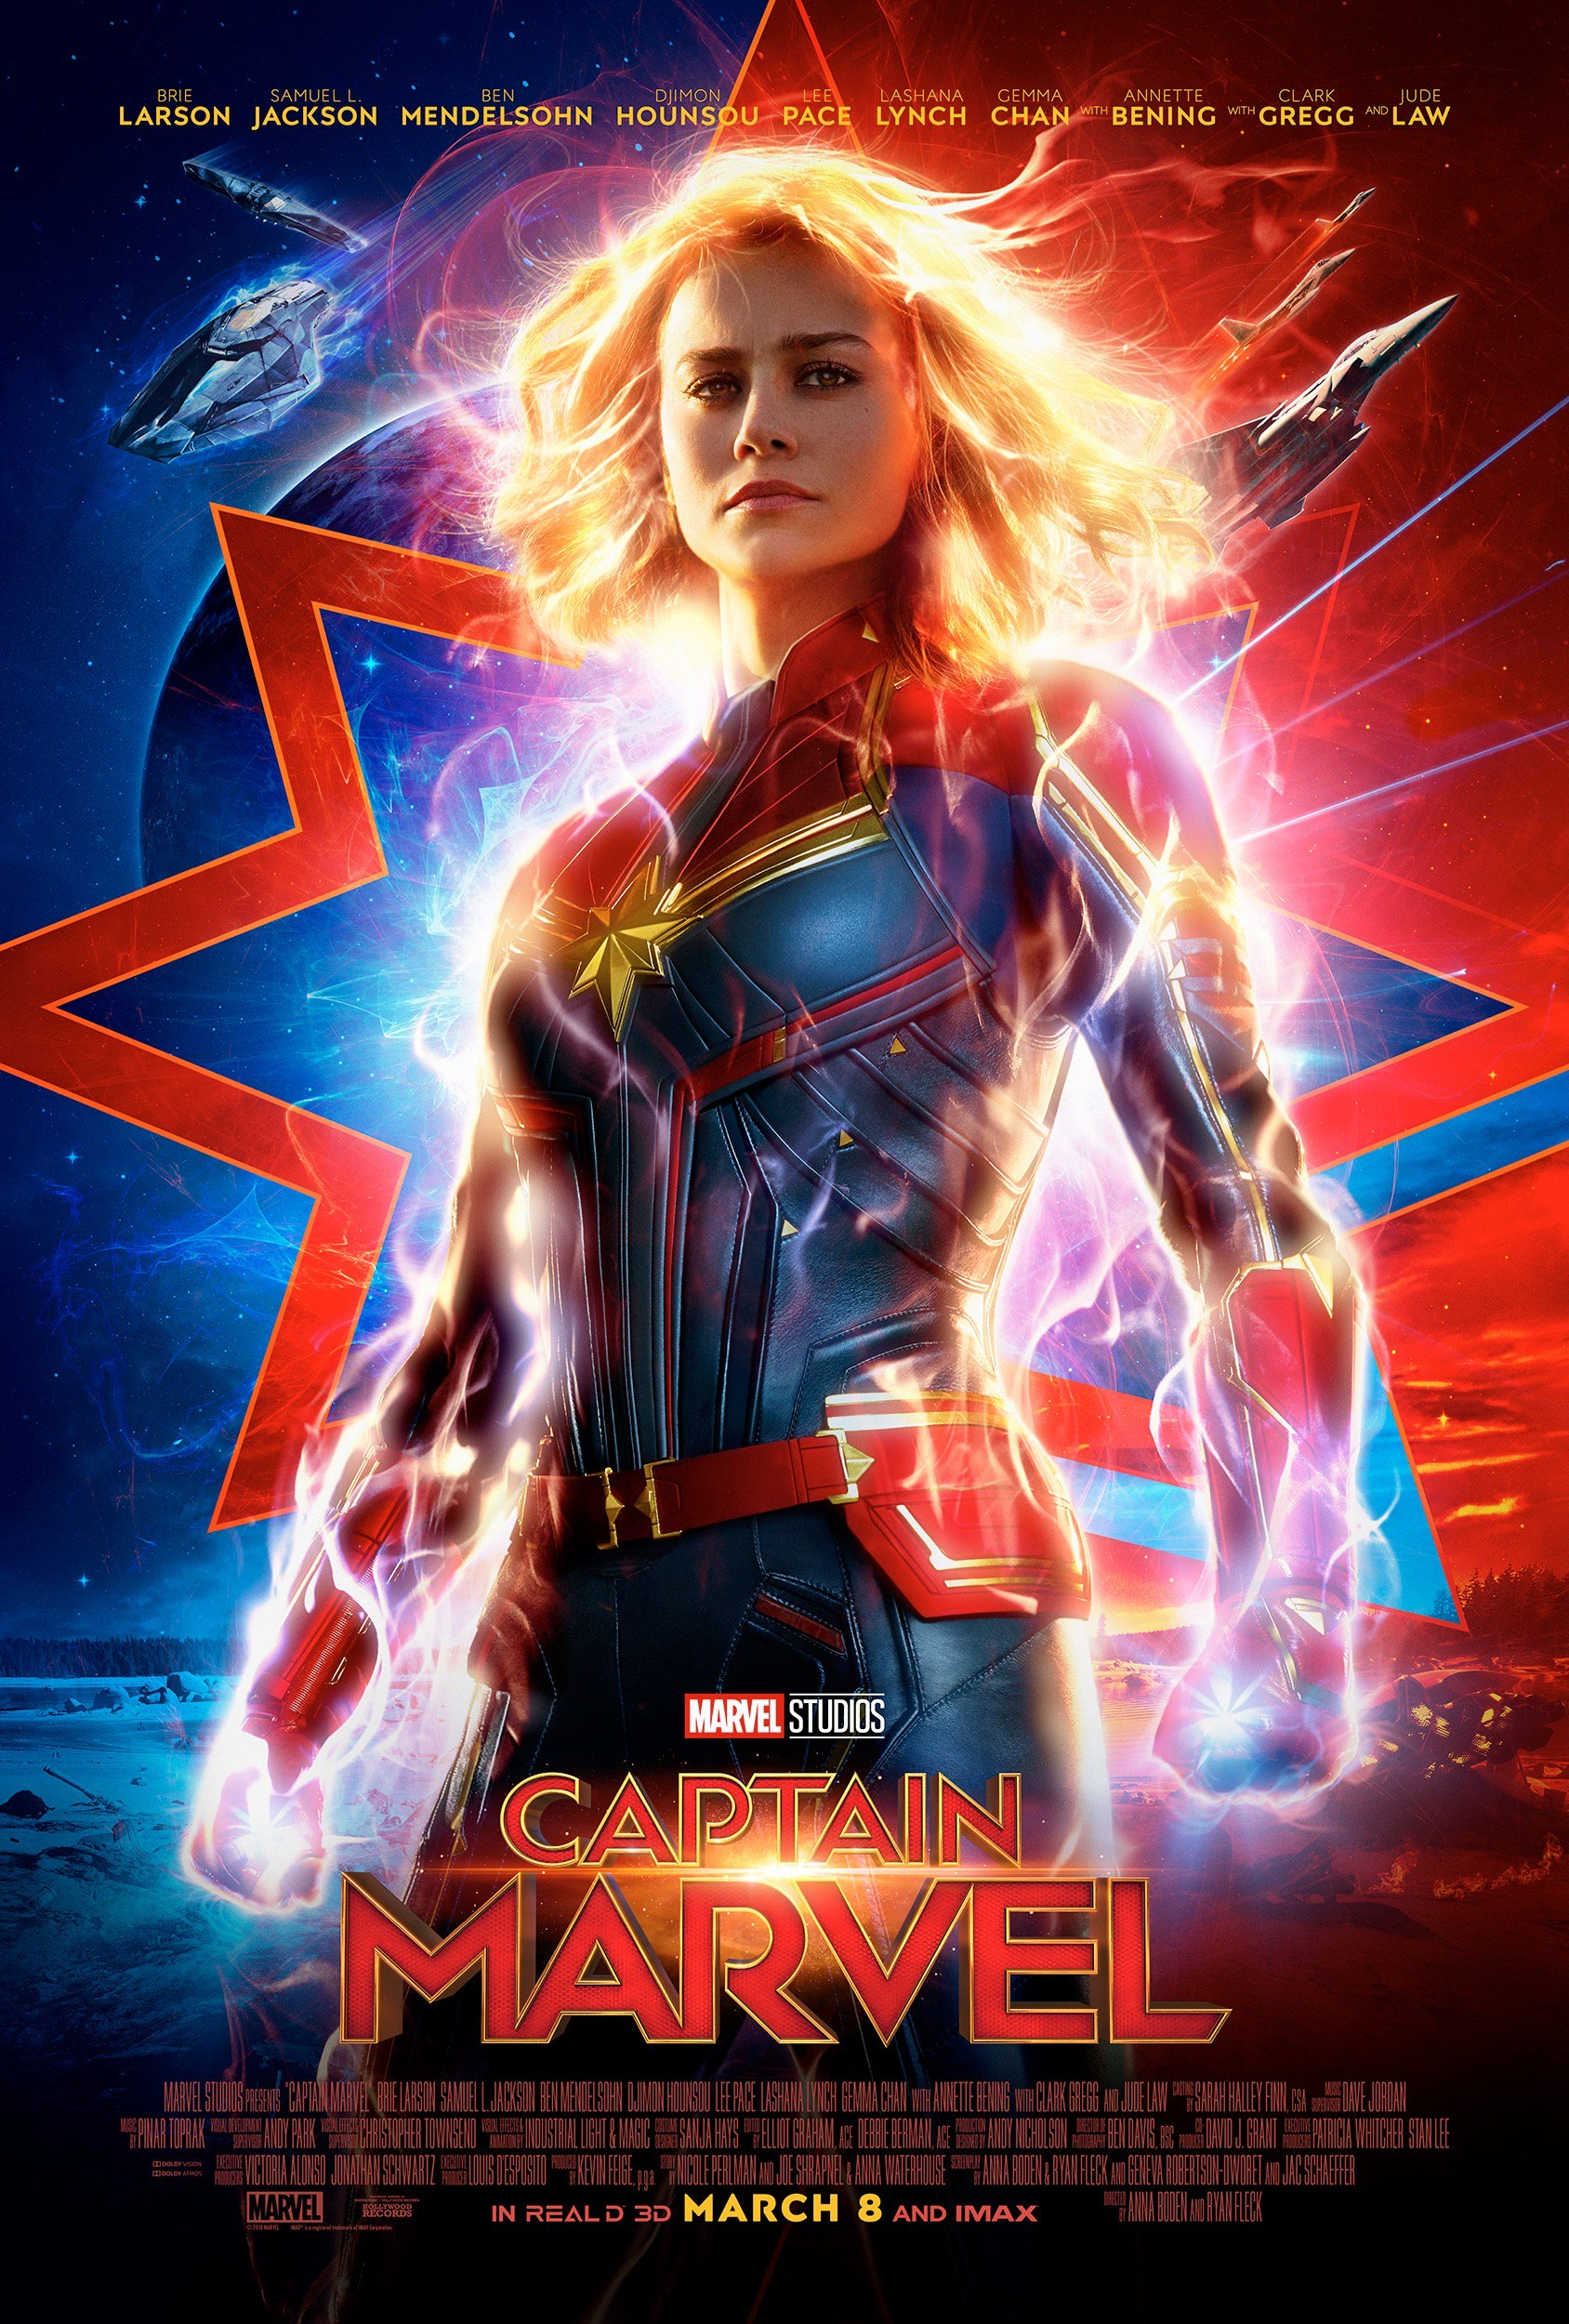 CAPTAIN MARVEL REVIEW    Even before the film was released, 'Captain Marvel' was attacked by Internet trolls with negative reviews, with over 50,000 reviews, more than 'Infinity War' received in its entire run in cinema, posted on Rotten Tomatoes before the release date and under 35%…   By Josh Osman